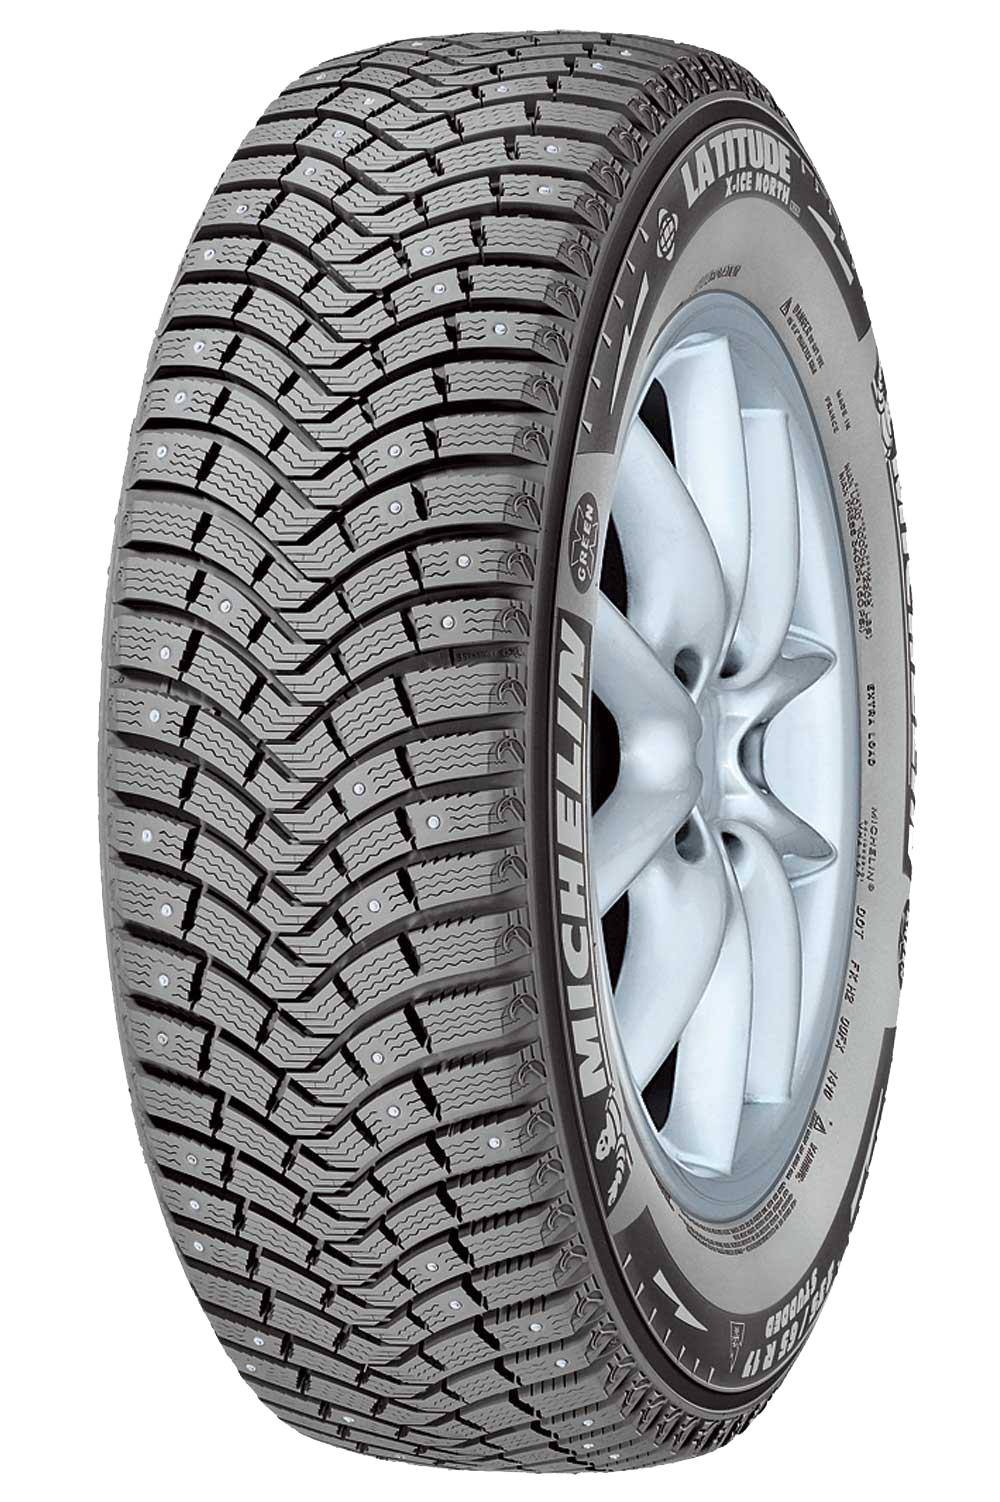 Зимняя шипованная шина Michelin Latitude X-Ice North XIN2 plus 235/55 R18 104T